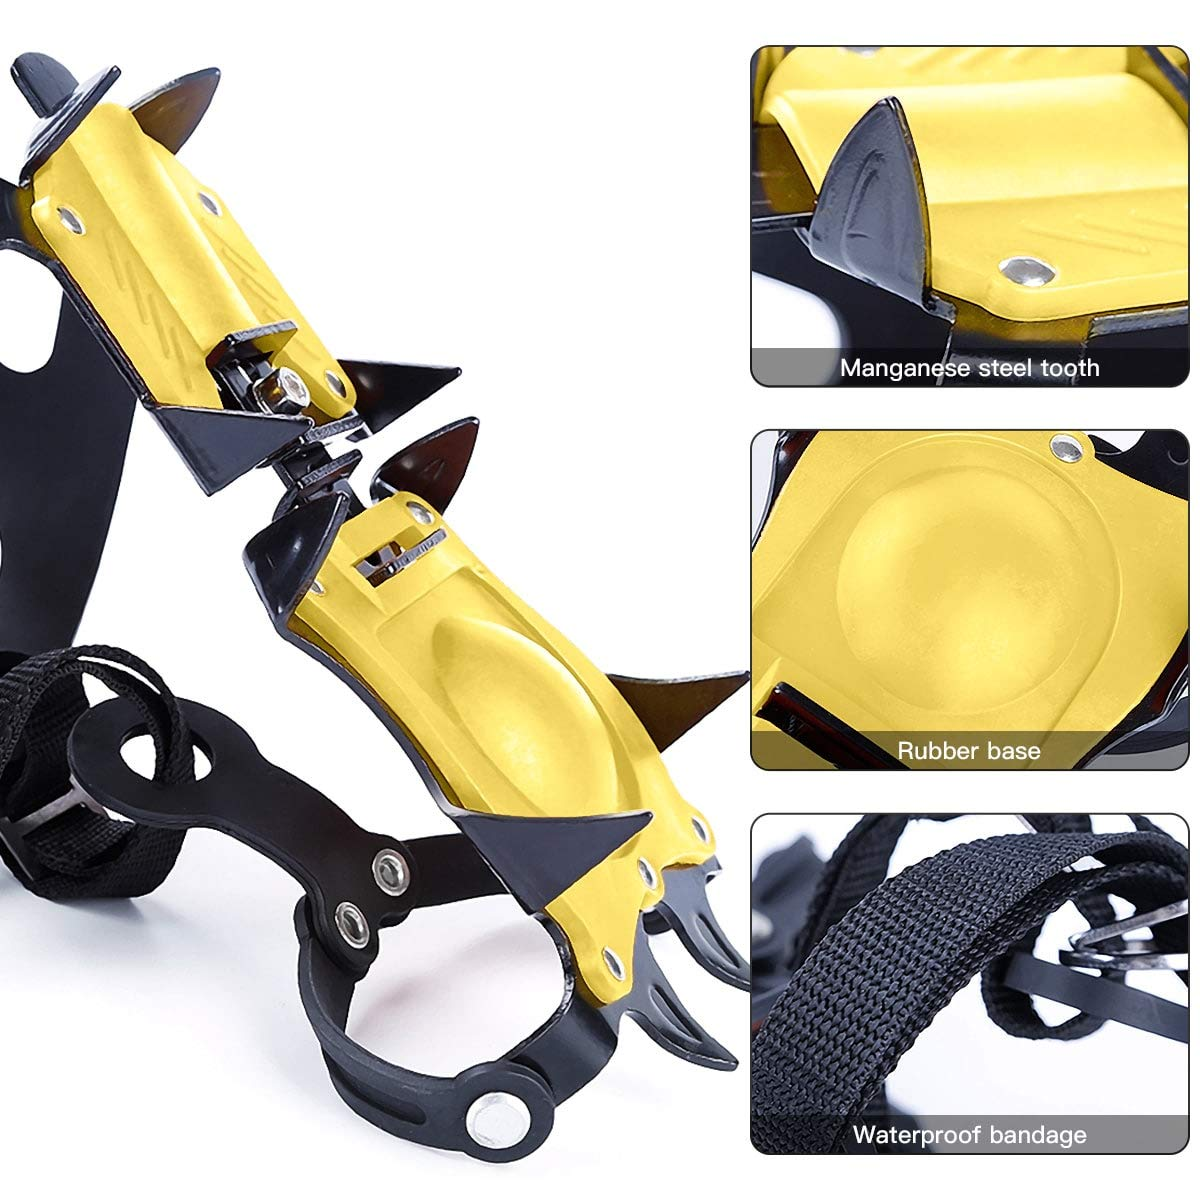 Walsilk Crampons Traction Cleats Spikes Snow Grips,Anti-Slip Stainless Steel Crampons for Mountaineering /& Ice Climbing